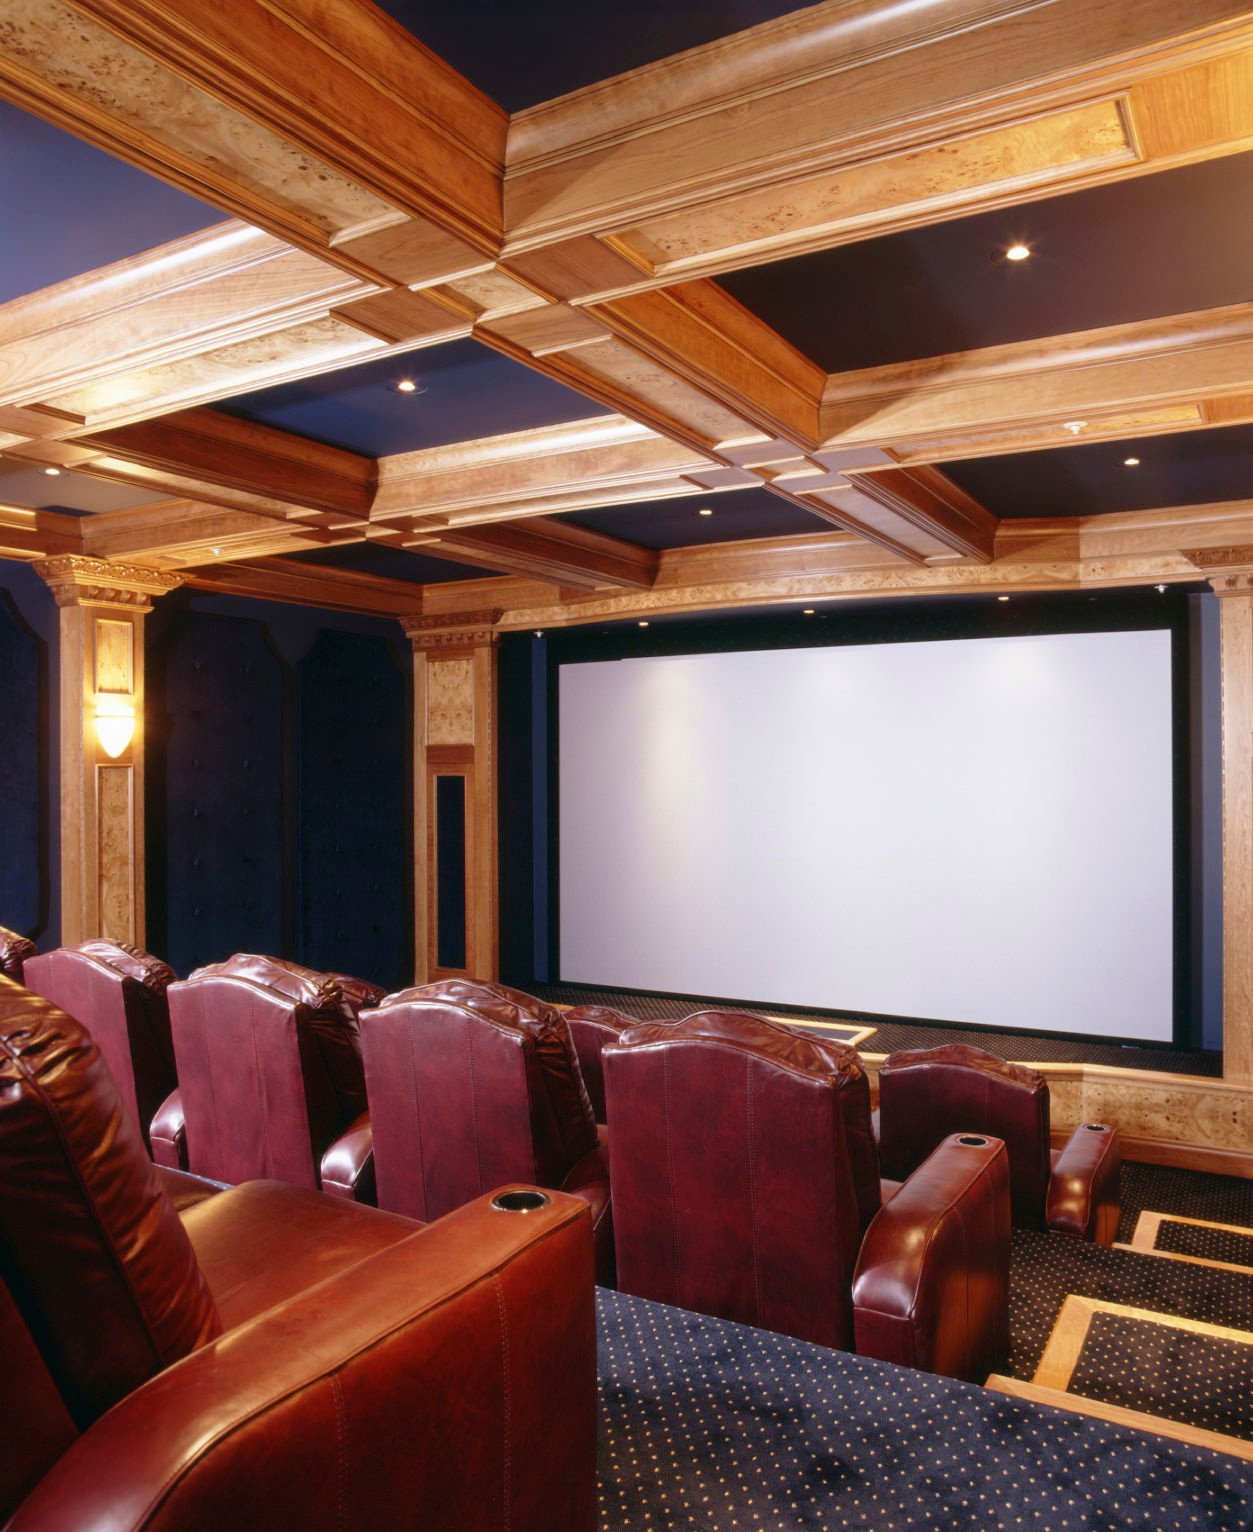 90 Home Theater & Media Room Ideas (Photos